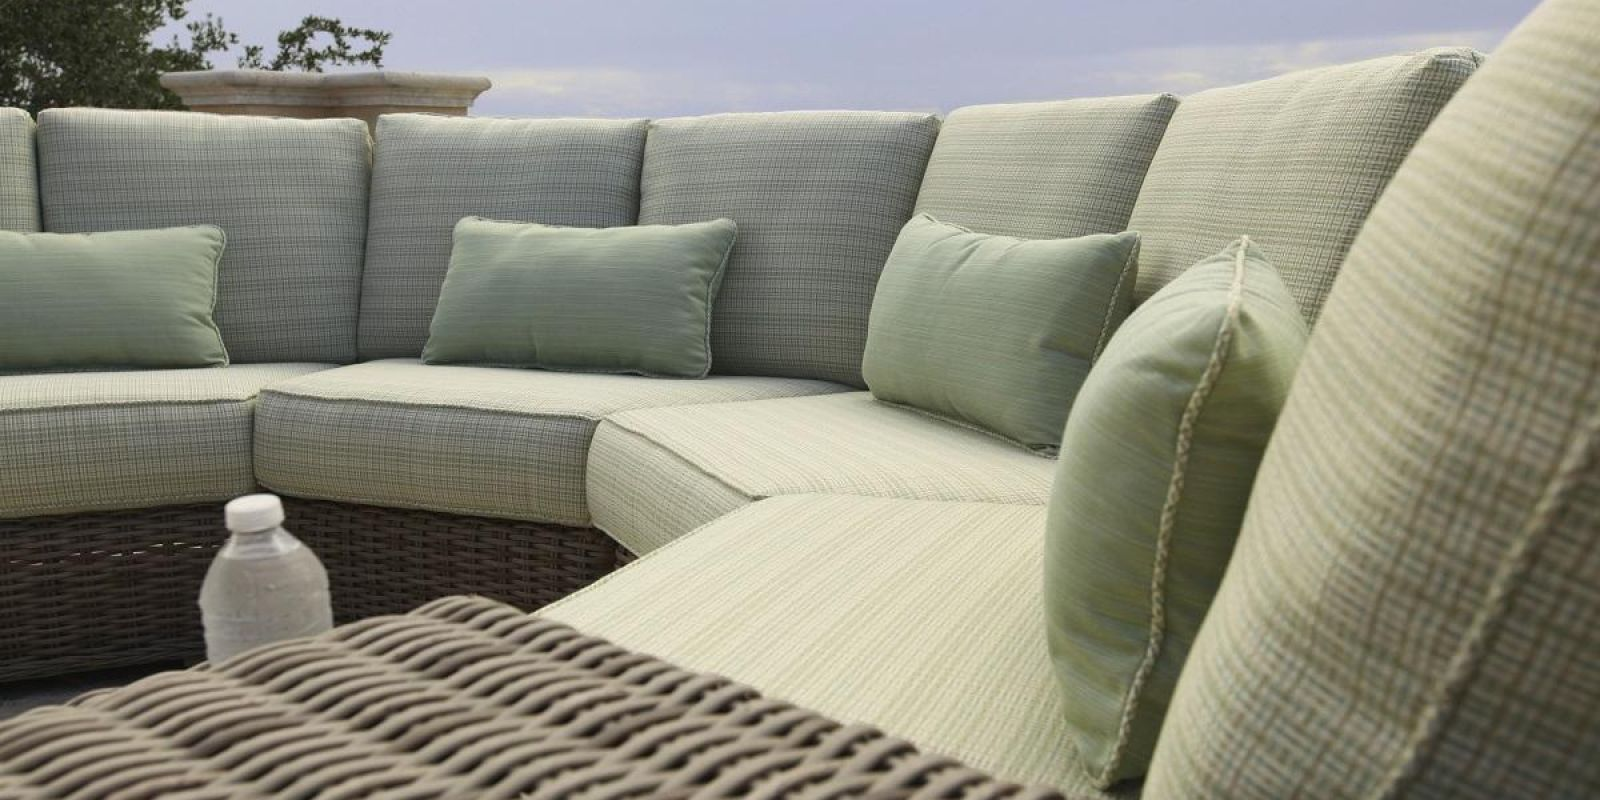 Outdoor Furniture | American Casual Living on Porch & Patio Casual Living id=44222